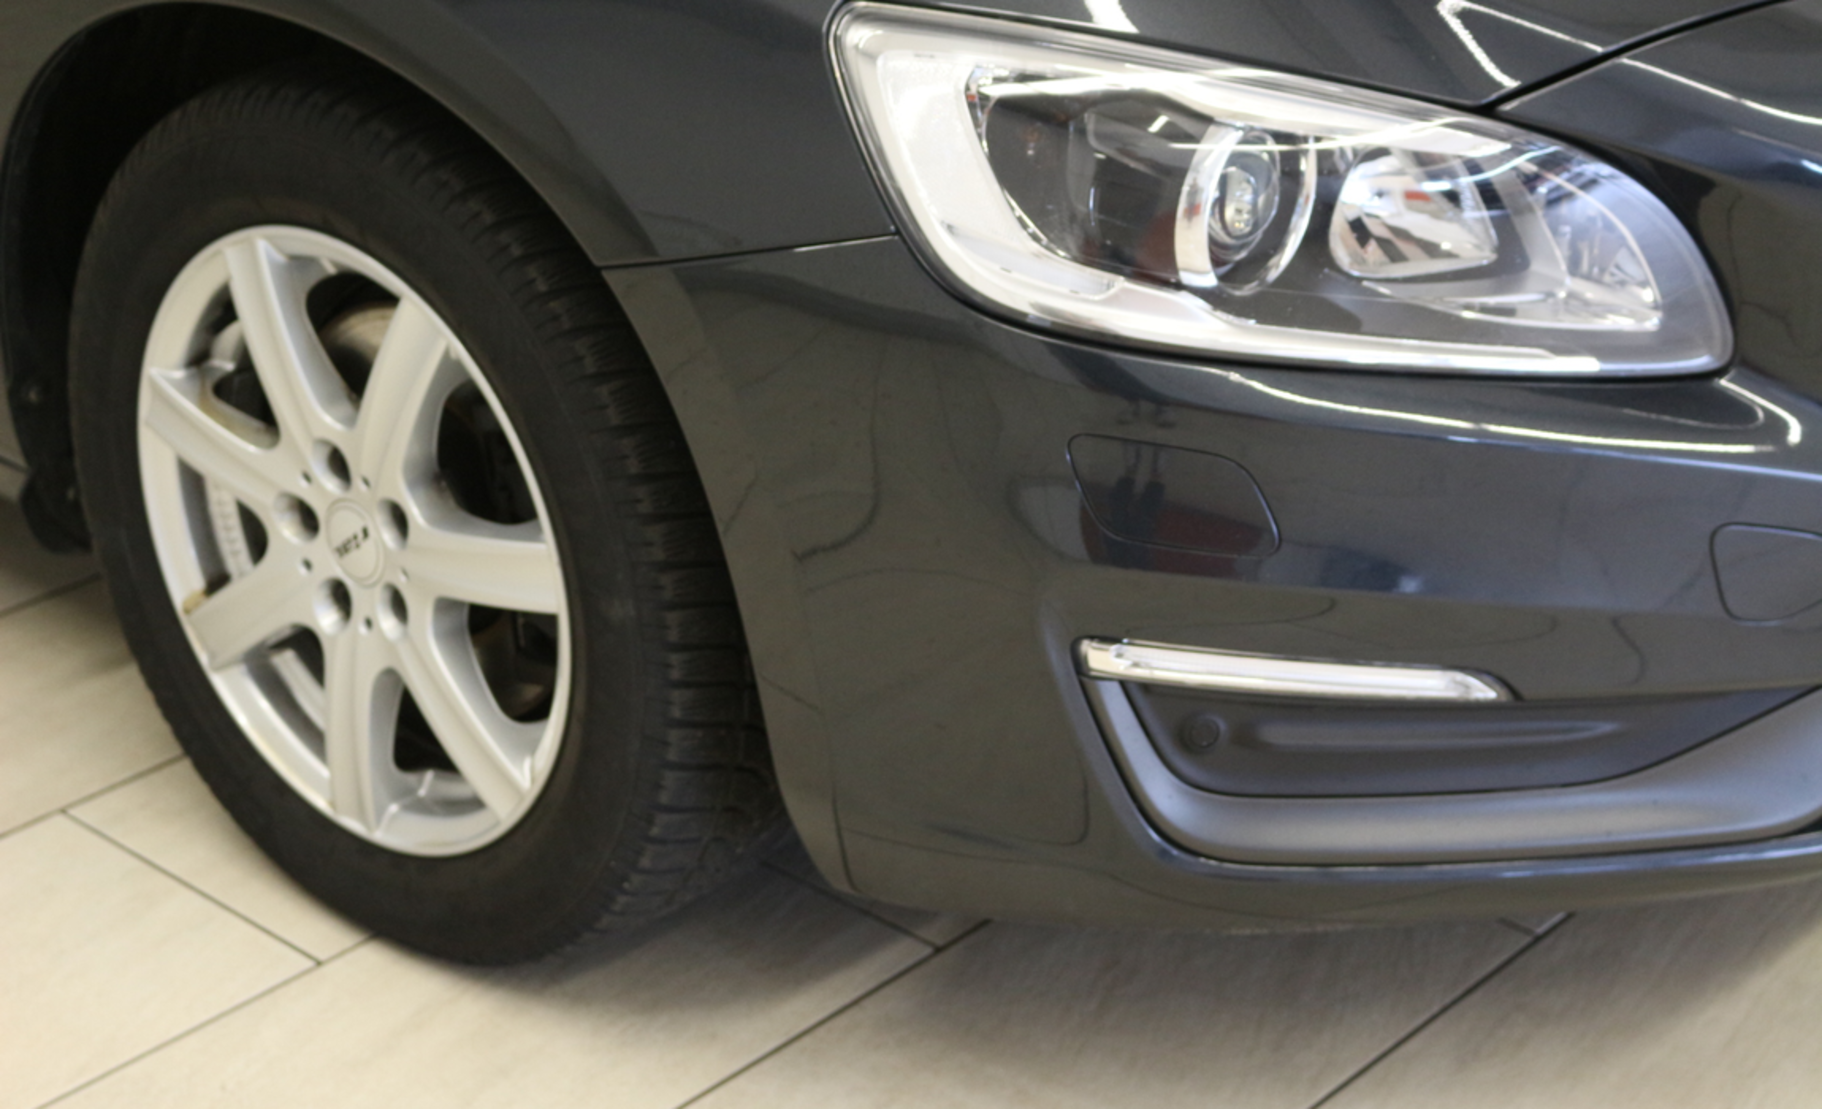 Volvo V60 D4 Geartronic, Kinetic (555041) detail2